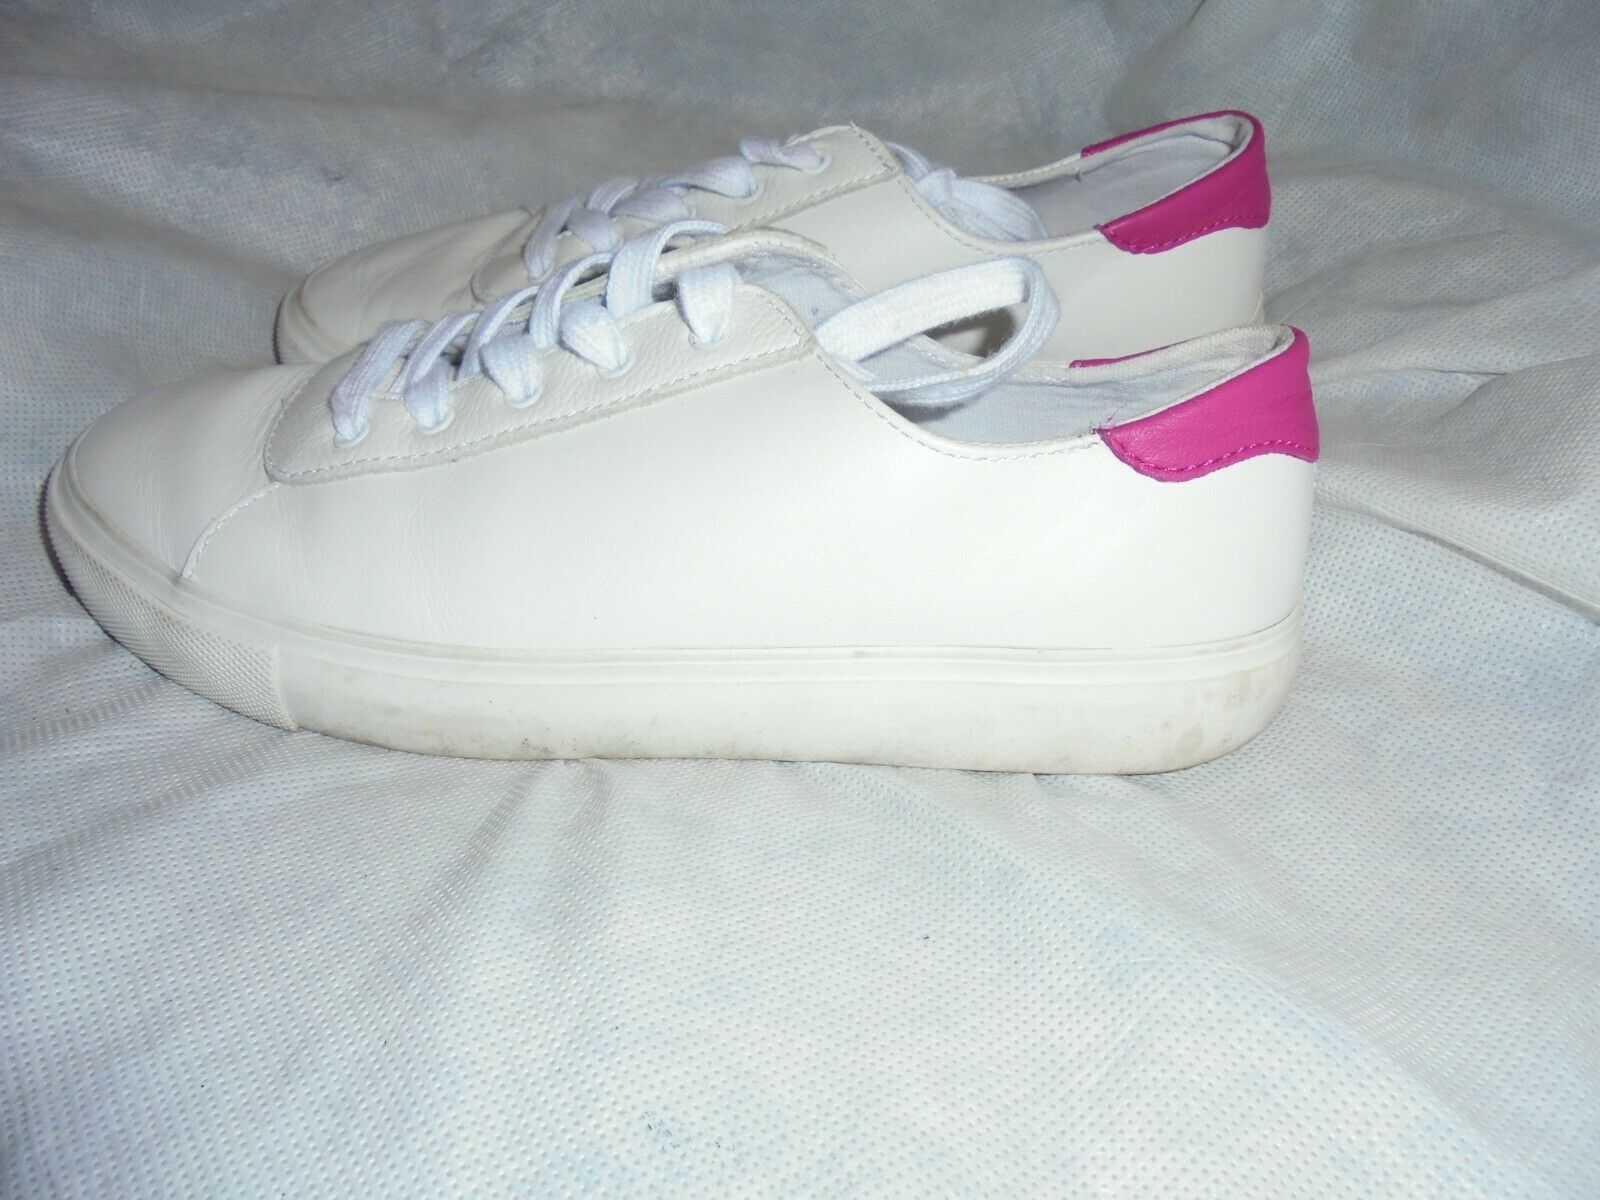 GAP WOMEN WHITE LEATHER LACE UP TRAINERS SIZE UK 5.5 EU 38.5 VGC